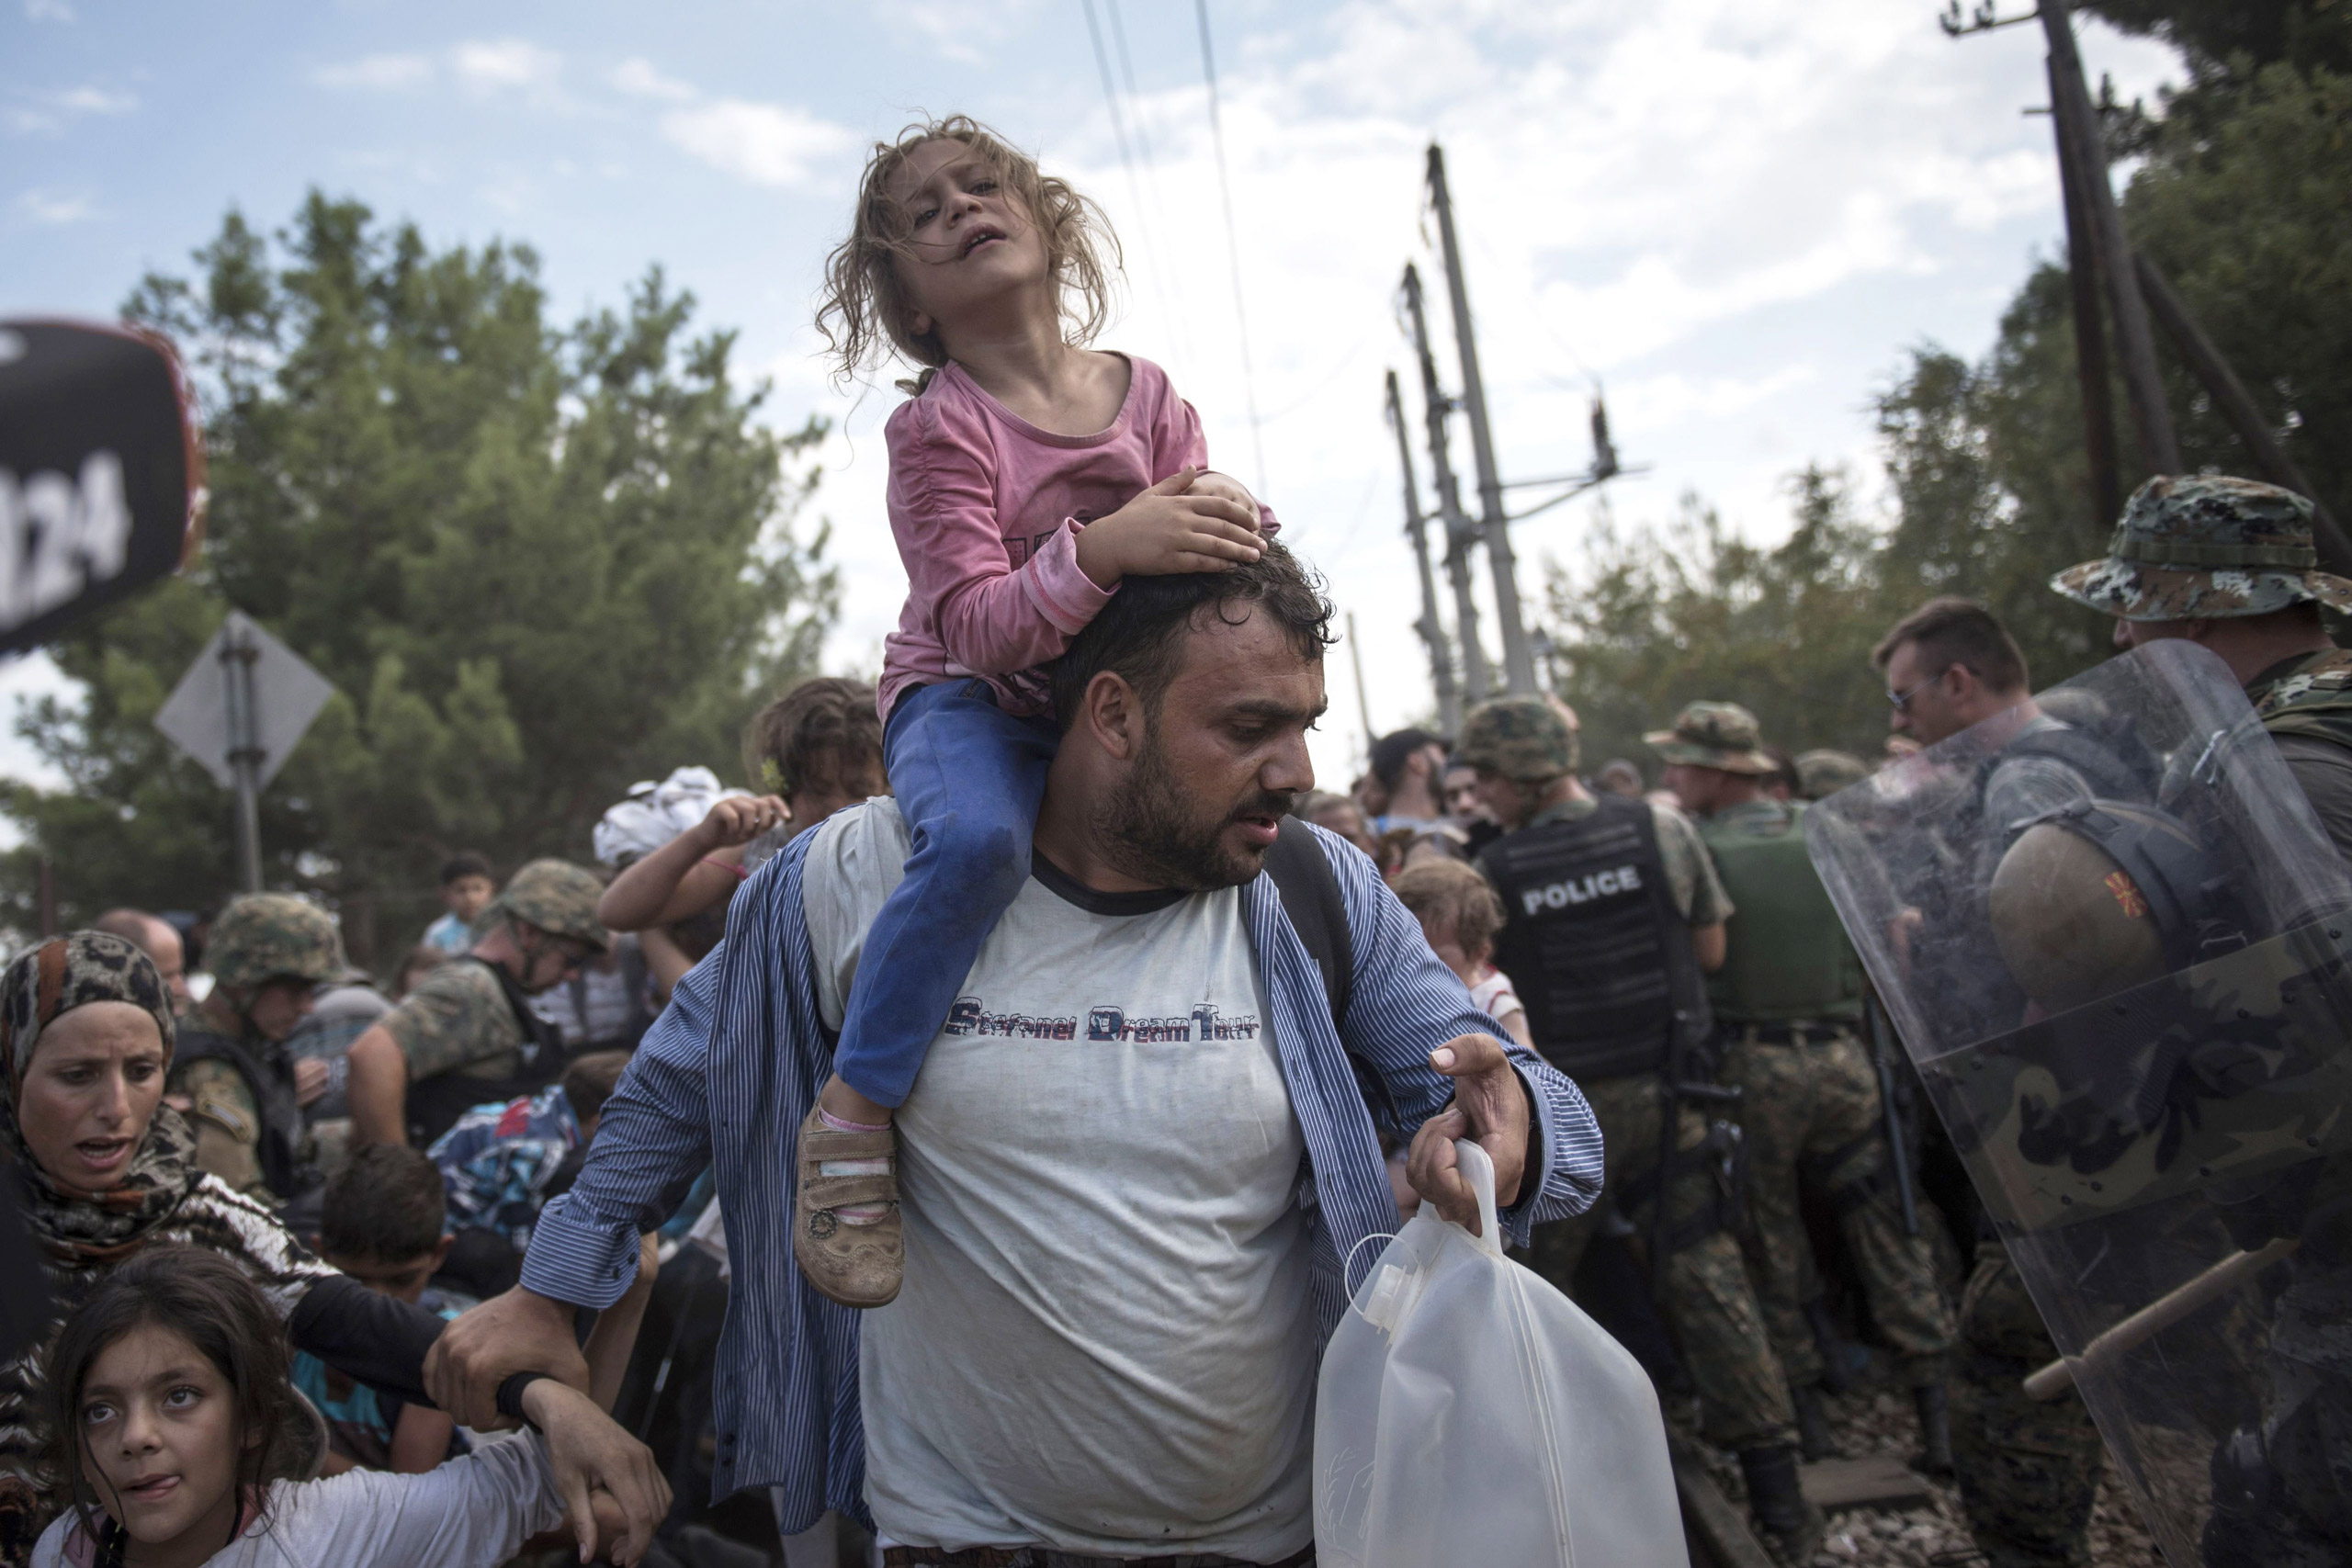 A migrant child and her father pass through a cordon of policeman and manage to enter Macedonia, after being held in the border zone between Greece and Macedonia, on Aug. 21, 2015.